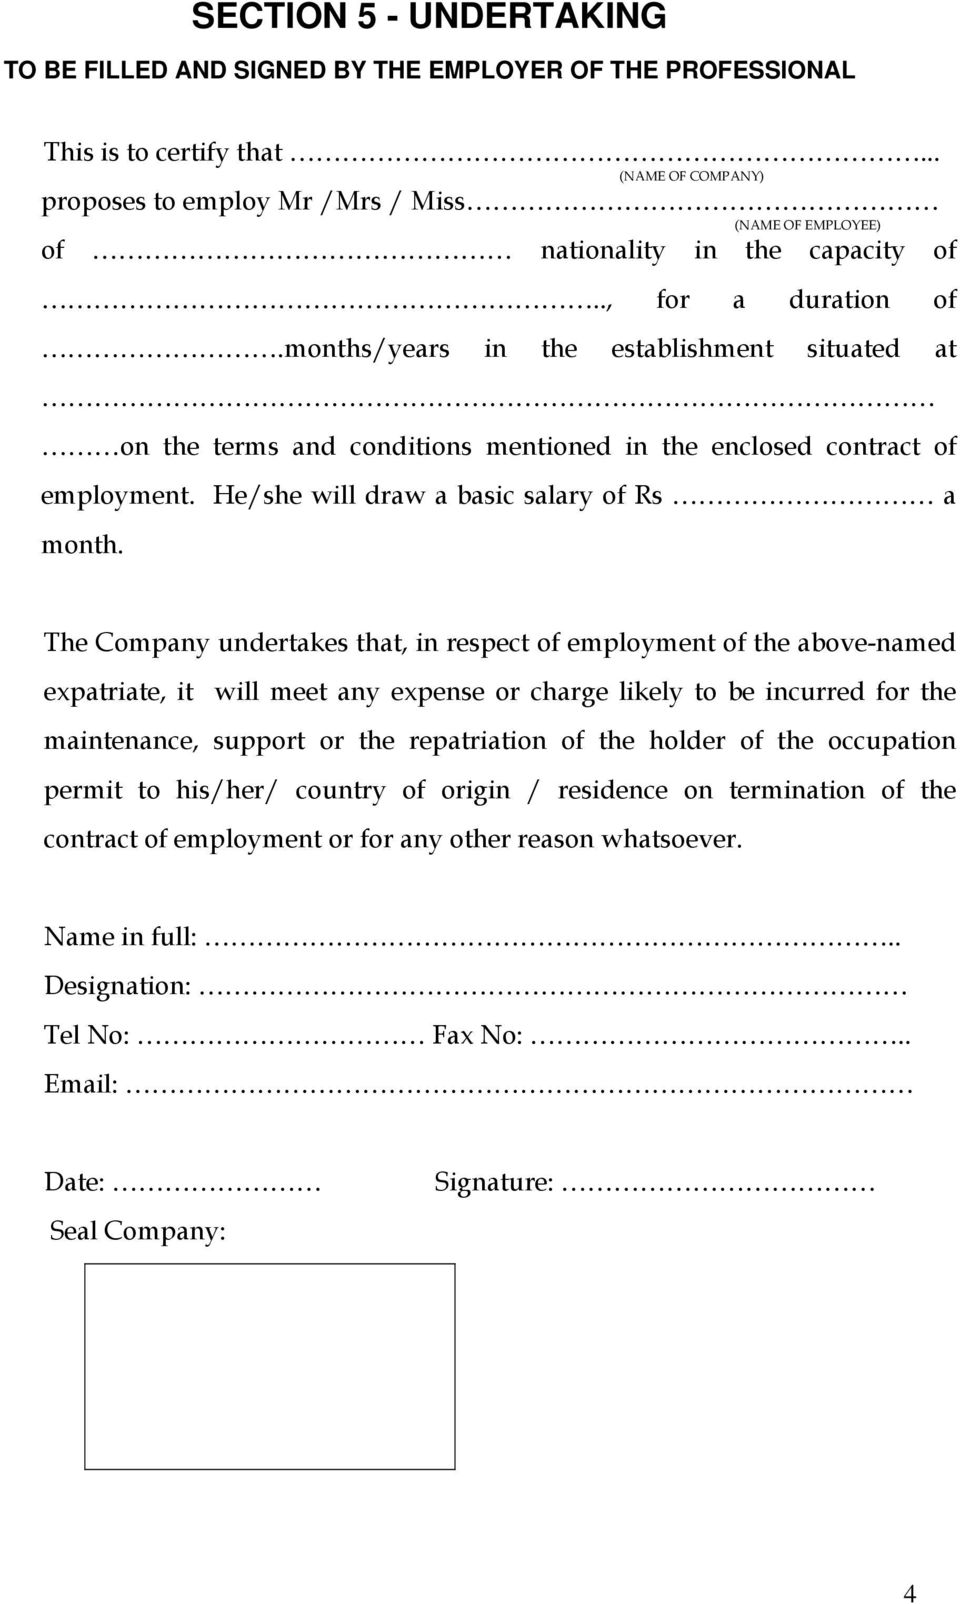 months/years in the establishment situated at on the terms and conditions mentioned in the enclosed contract of employment. He/she will draw a basic salary of Rs a month.